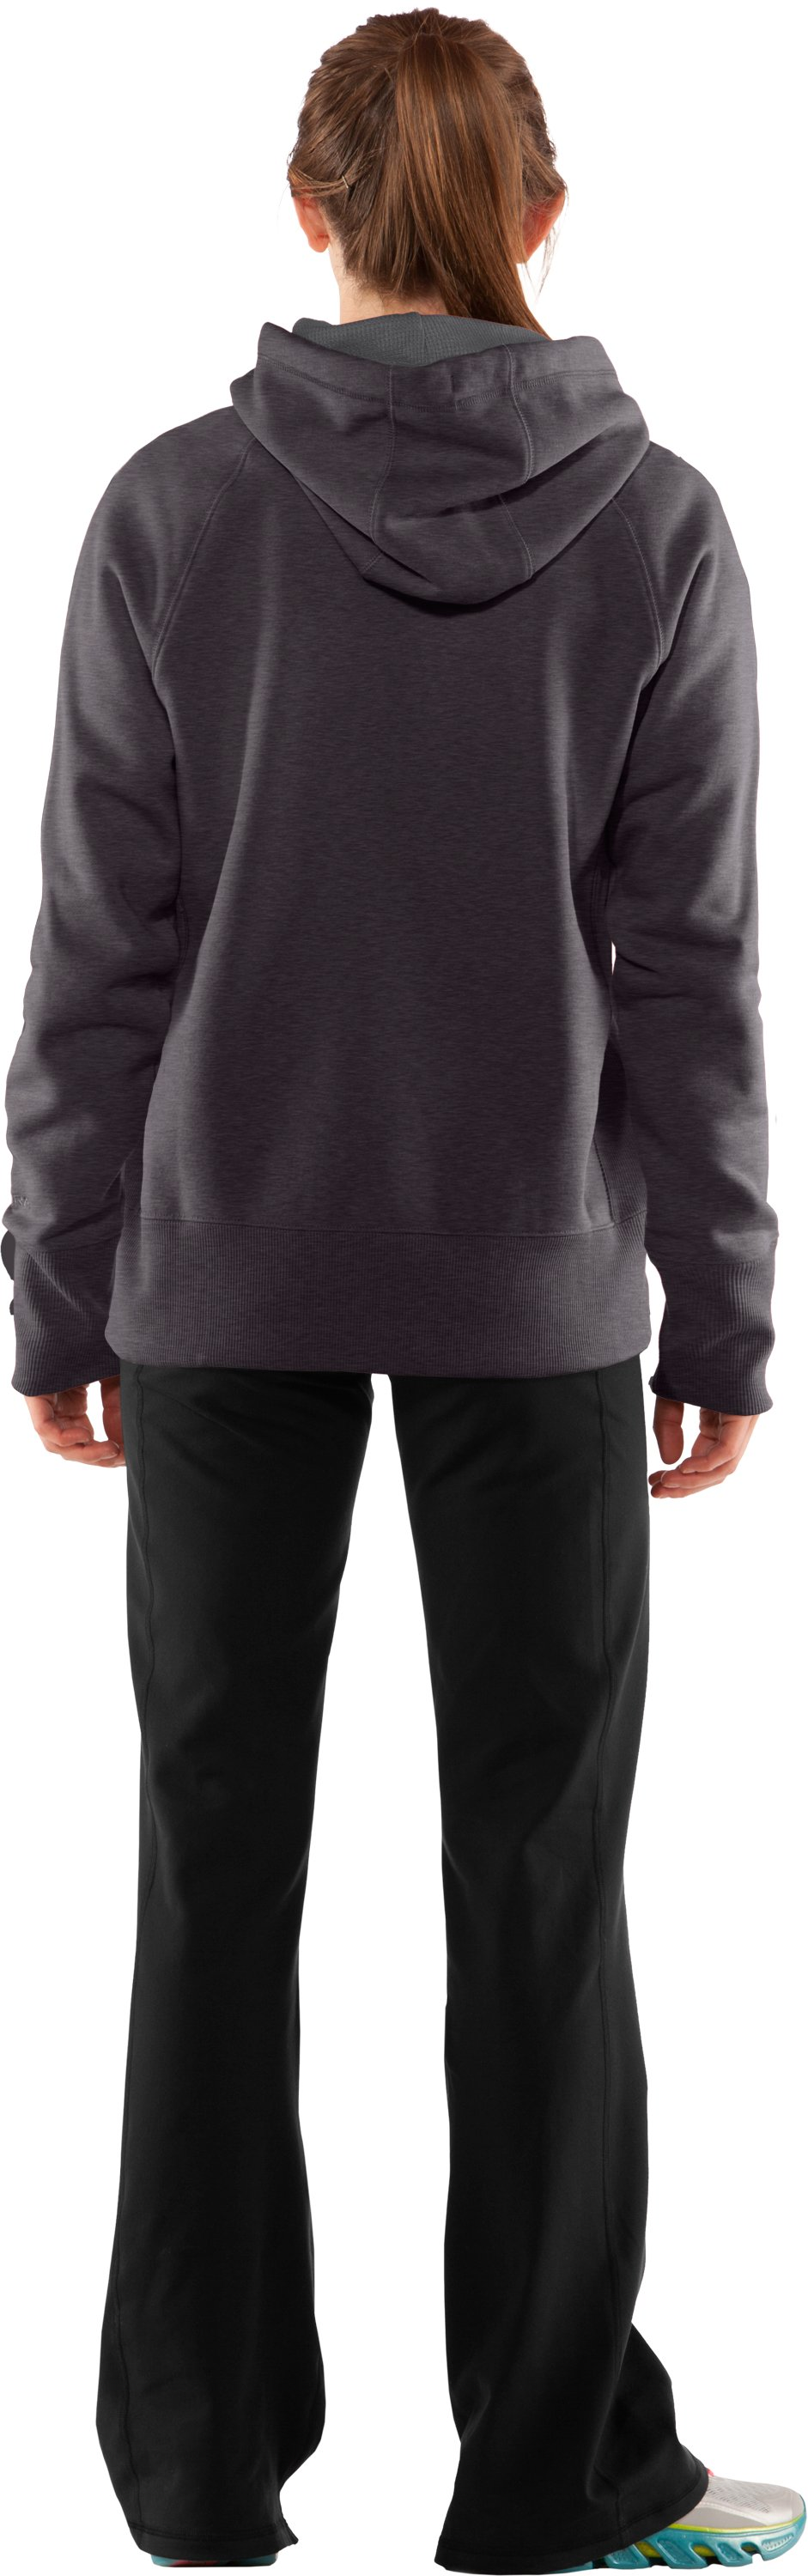 Women's Charged Cotton® Storm Hoodie, Carbon Heather, Back